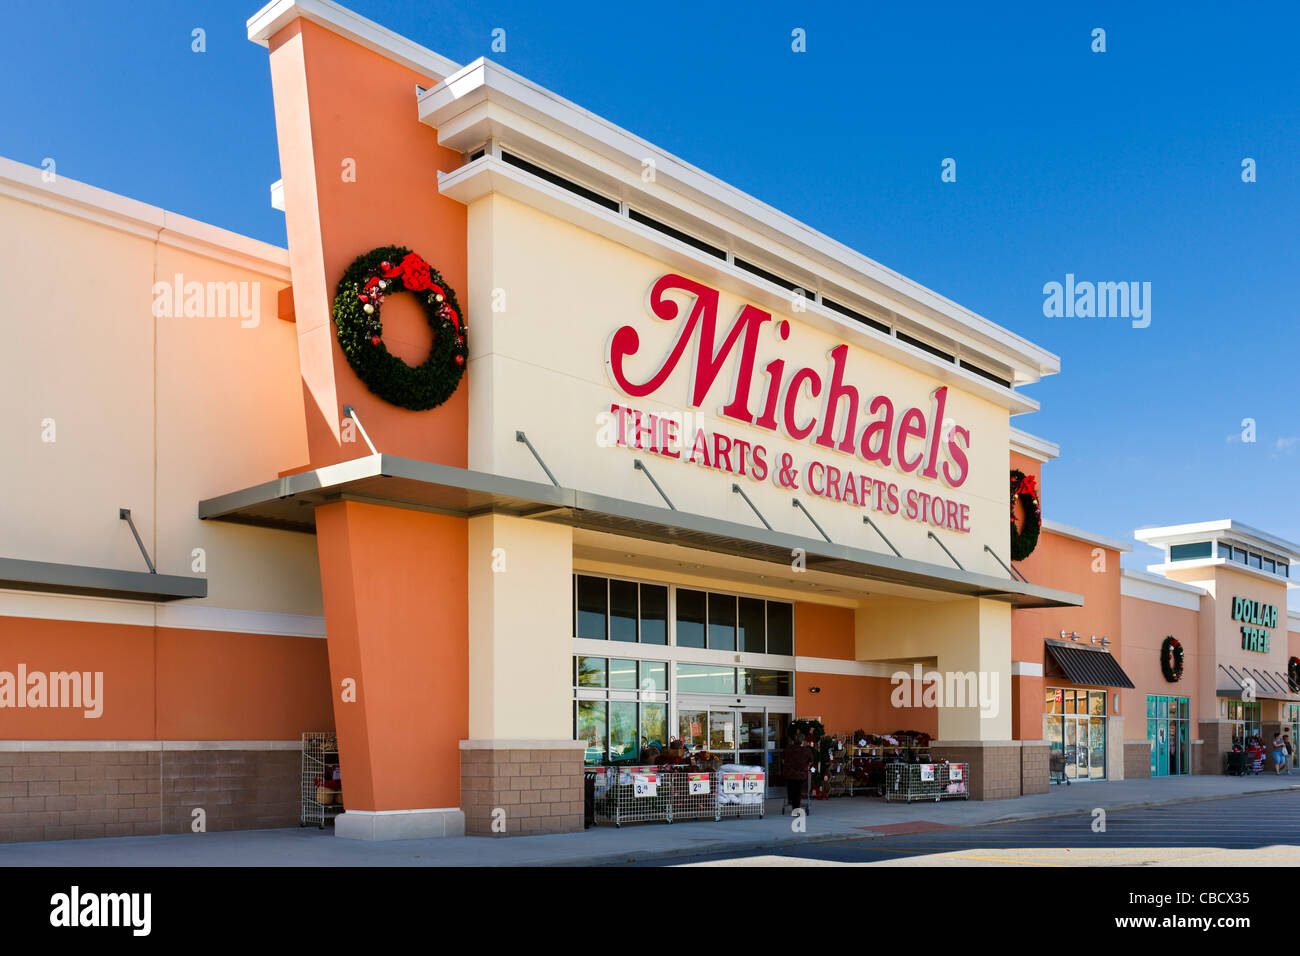 Michaels Arts and Crafts store at Posner Park retail development, Davenport, Central Florida, USA - Stock Image